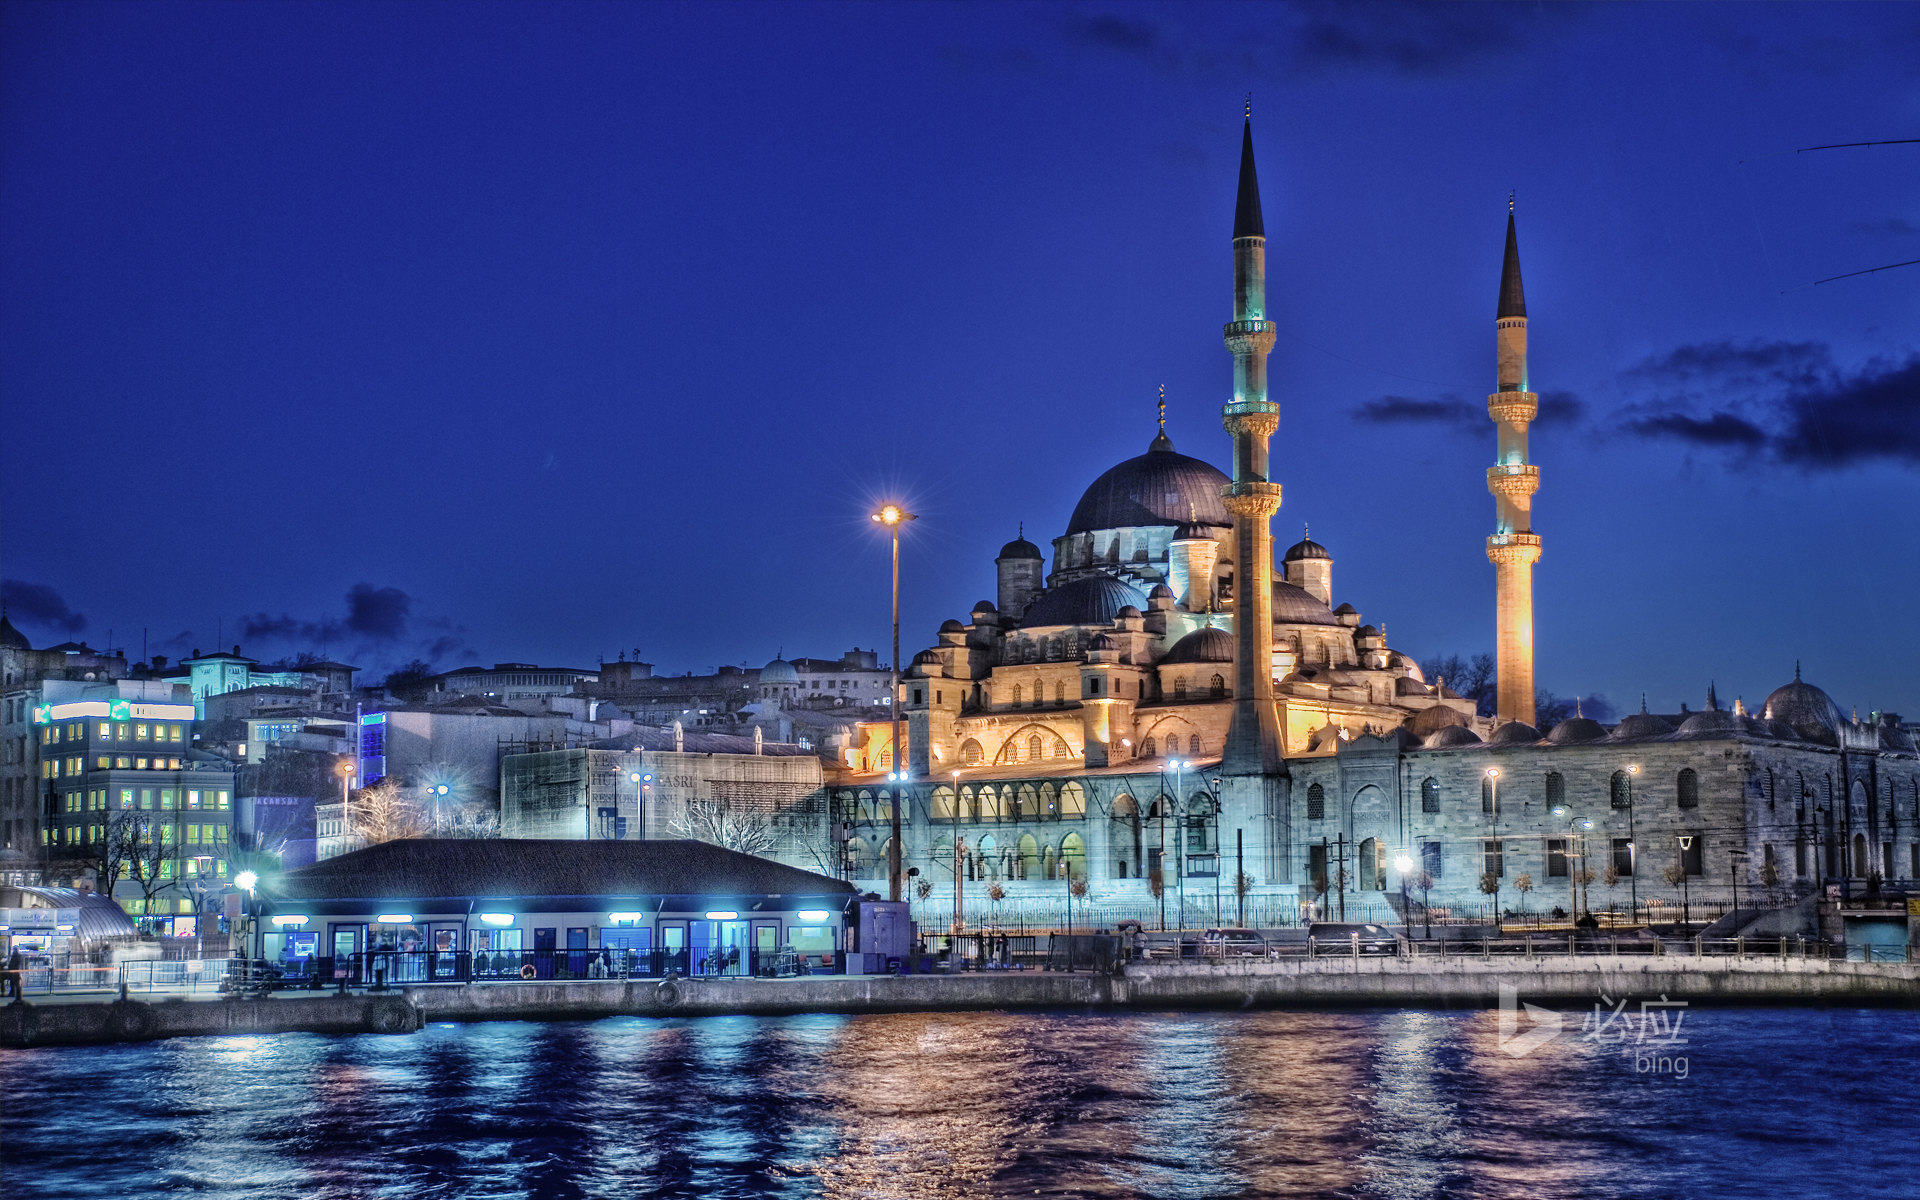 New Mosque (Yeni Mosque), Istanbul, Turkey